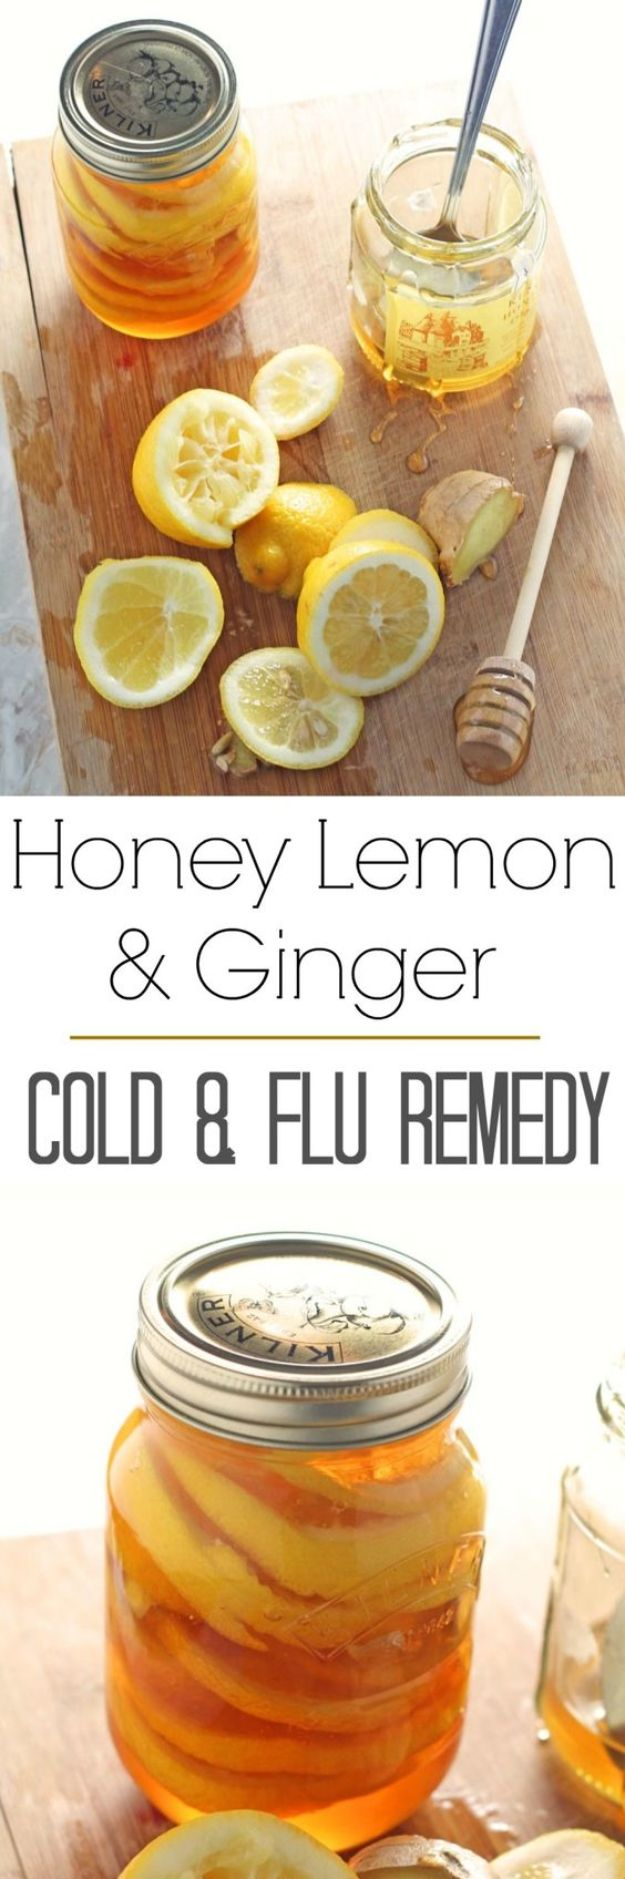 DIY Home Remedies - Honey Lemon & Ginger Jar - Homemade Recipes and Ideas for Help Relieve Symptoms of Cold and Flu, Upset Stomach, Rash, Cough, Sore Throat, Headache and Illness - Skincare Products, Balms, Lotions and Teas